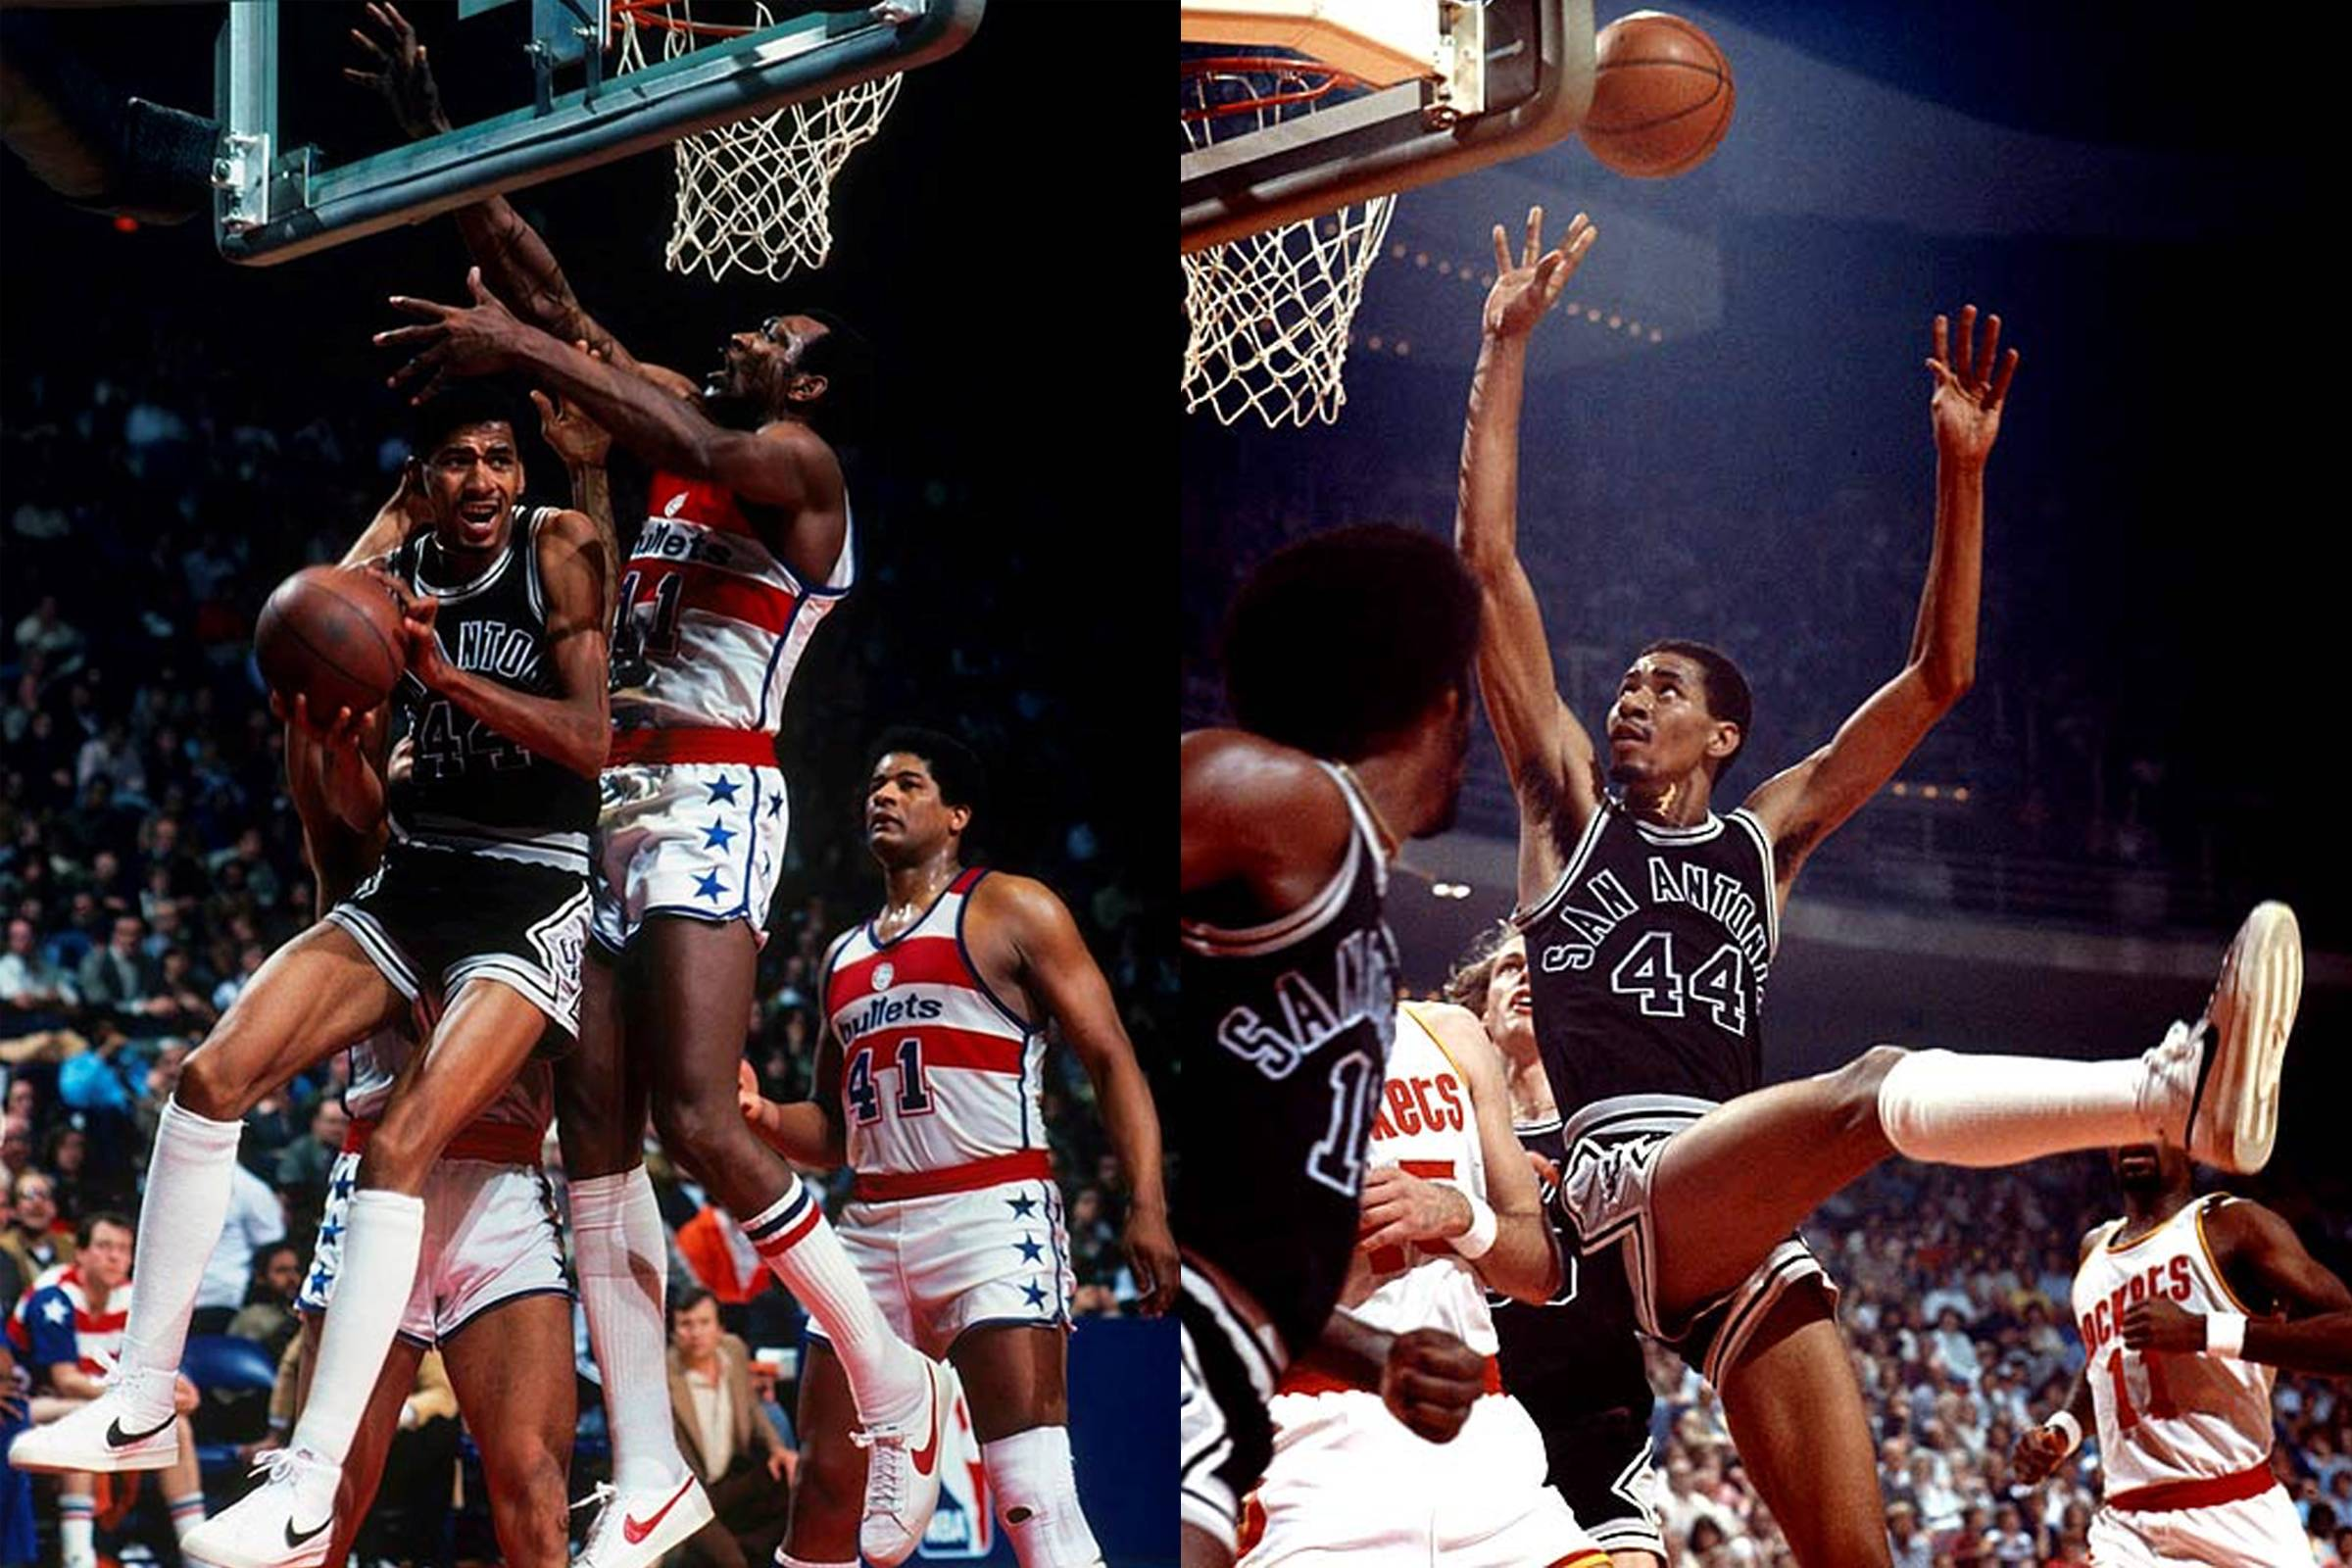 George 'Iceman' Gervin playing in the Nike Blazer